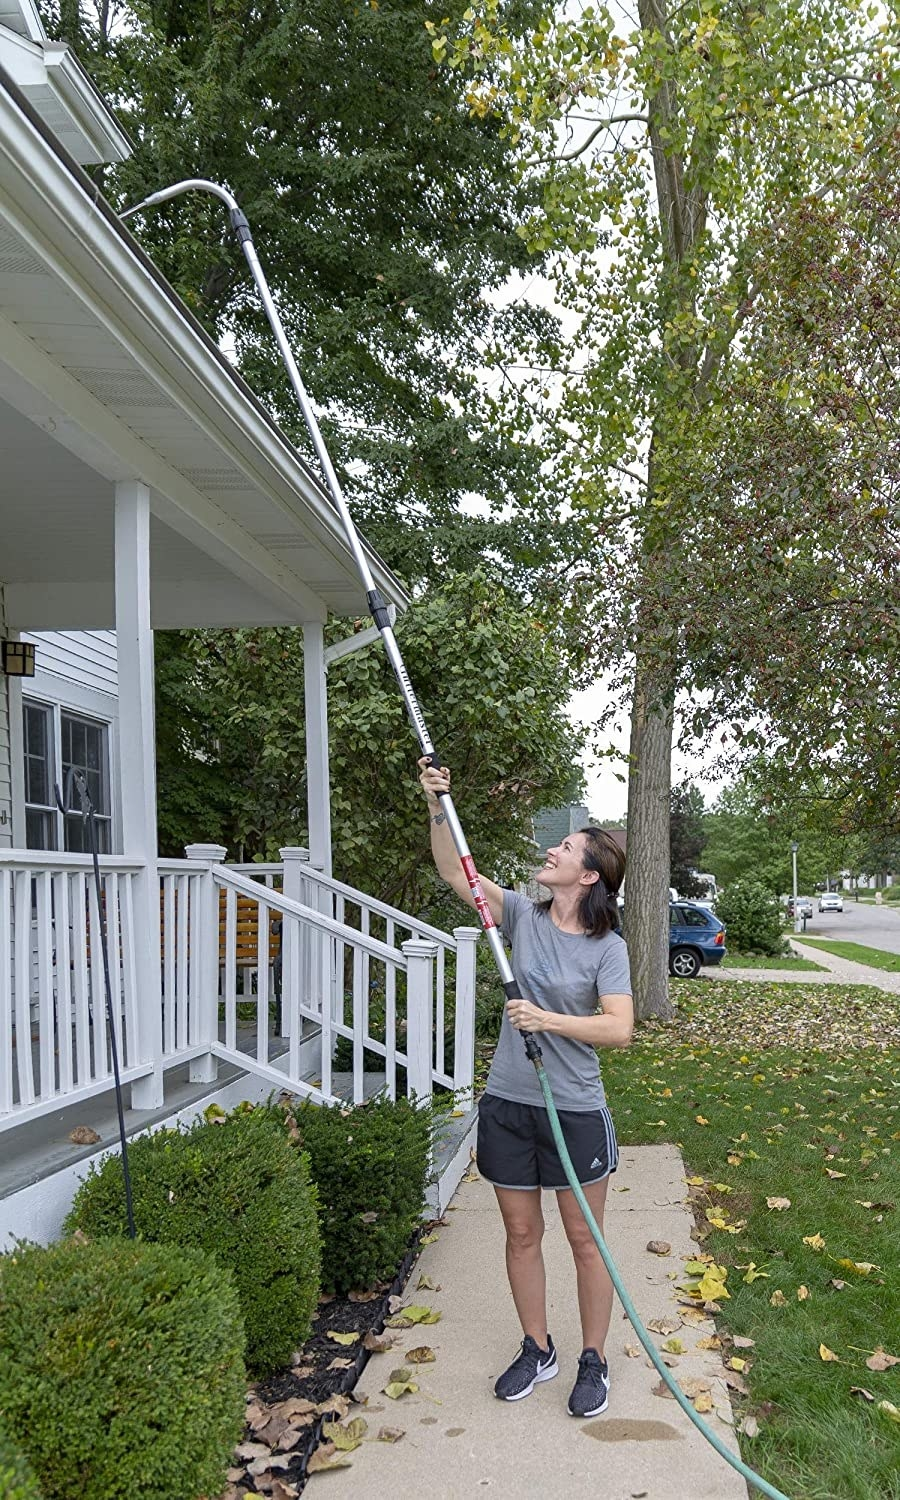 Model using the tool attached to a hose to clean gutters